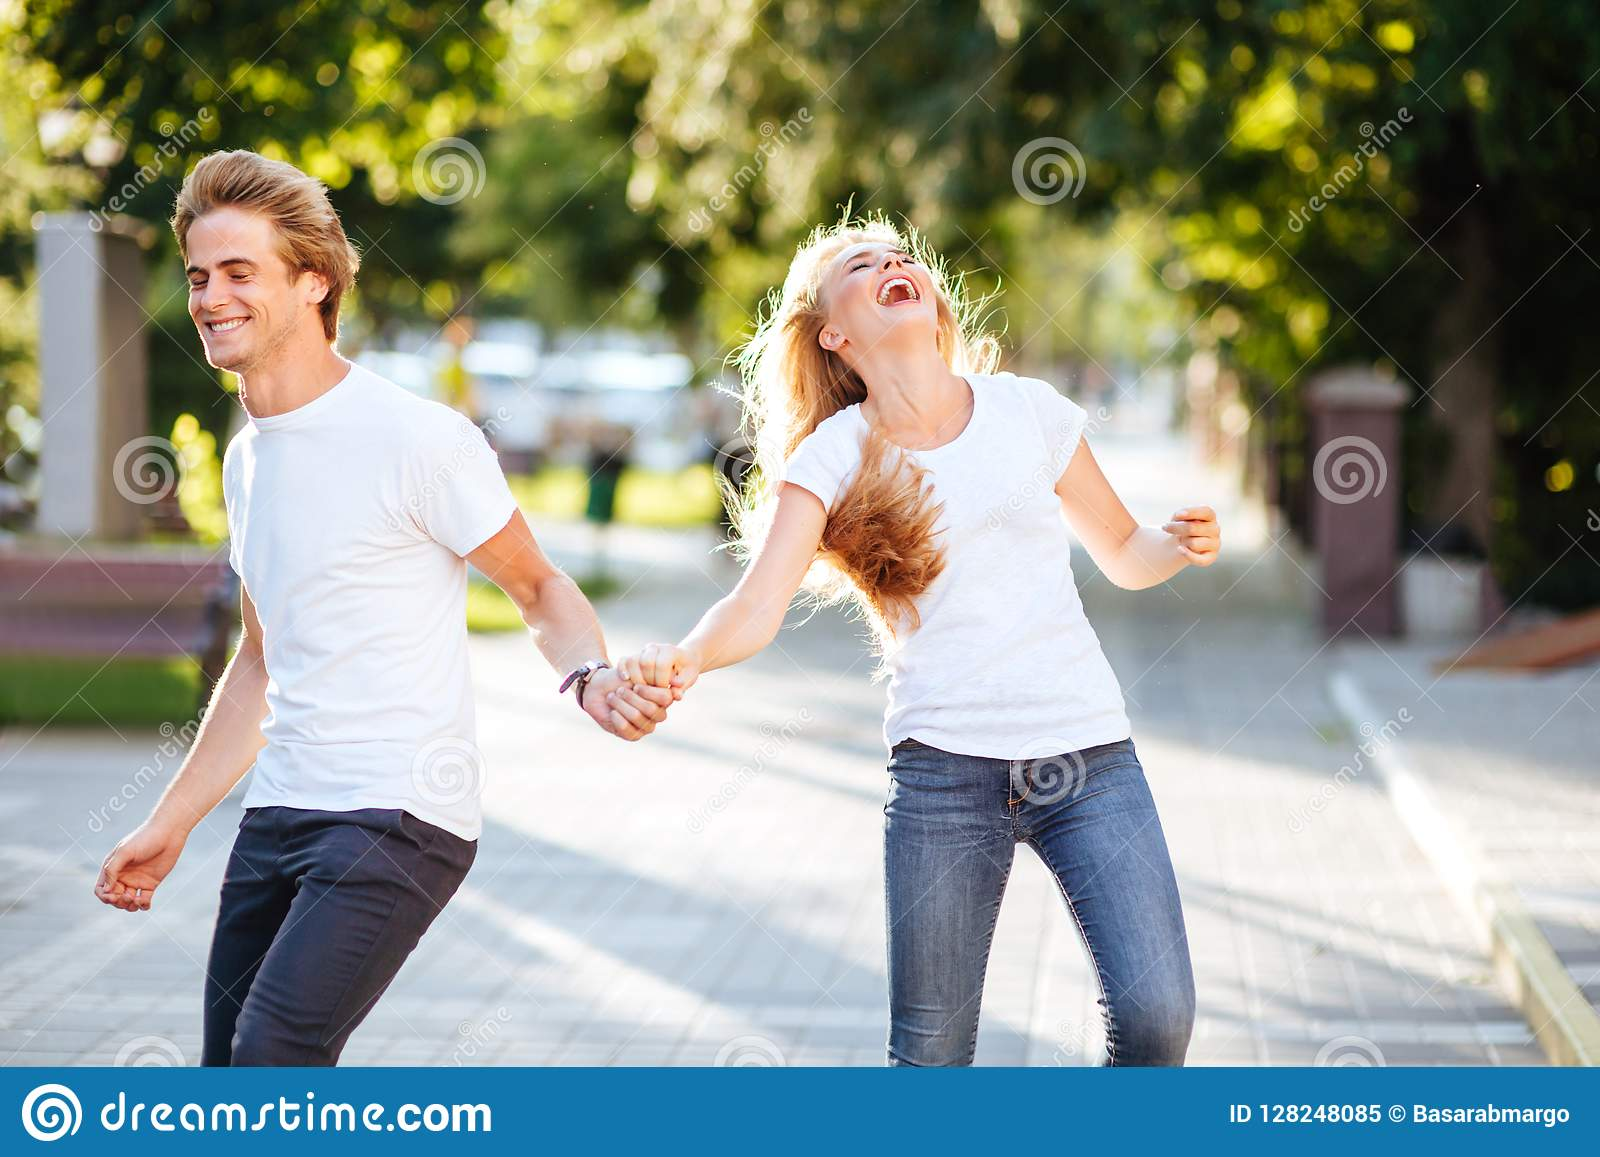 Smiling couple in park